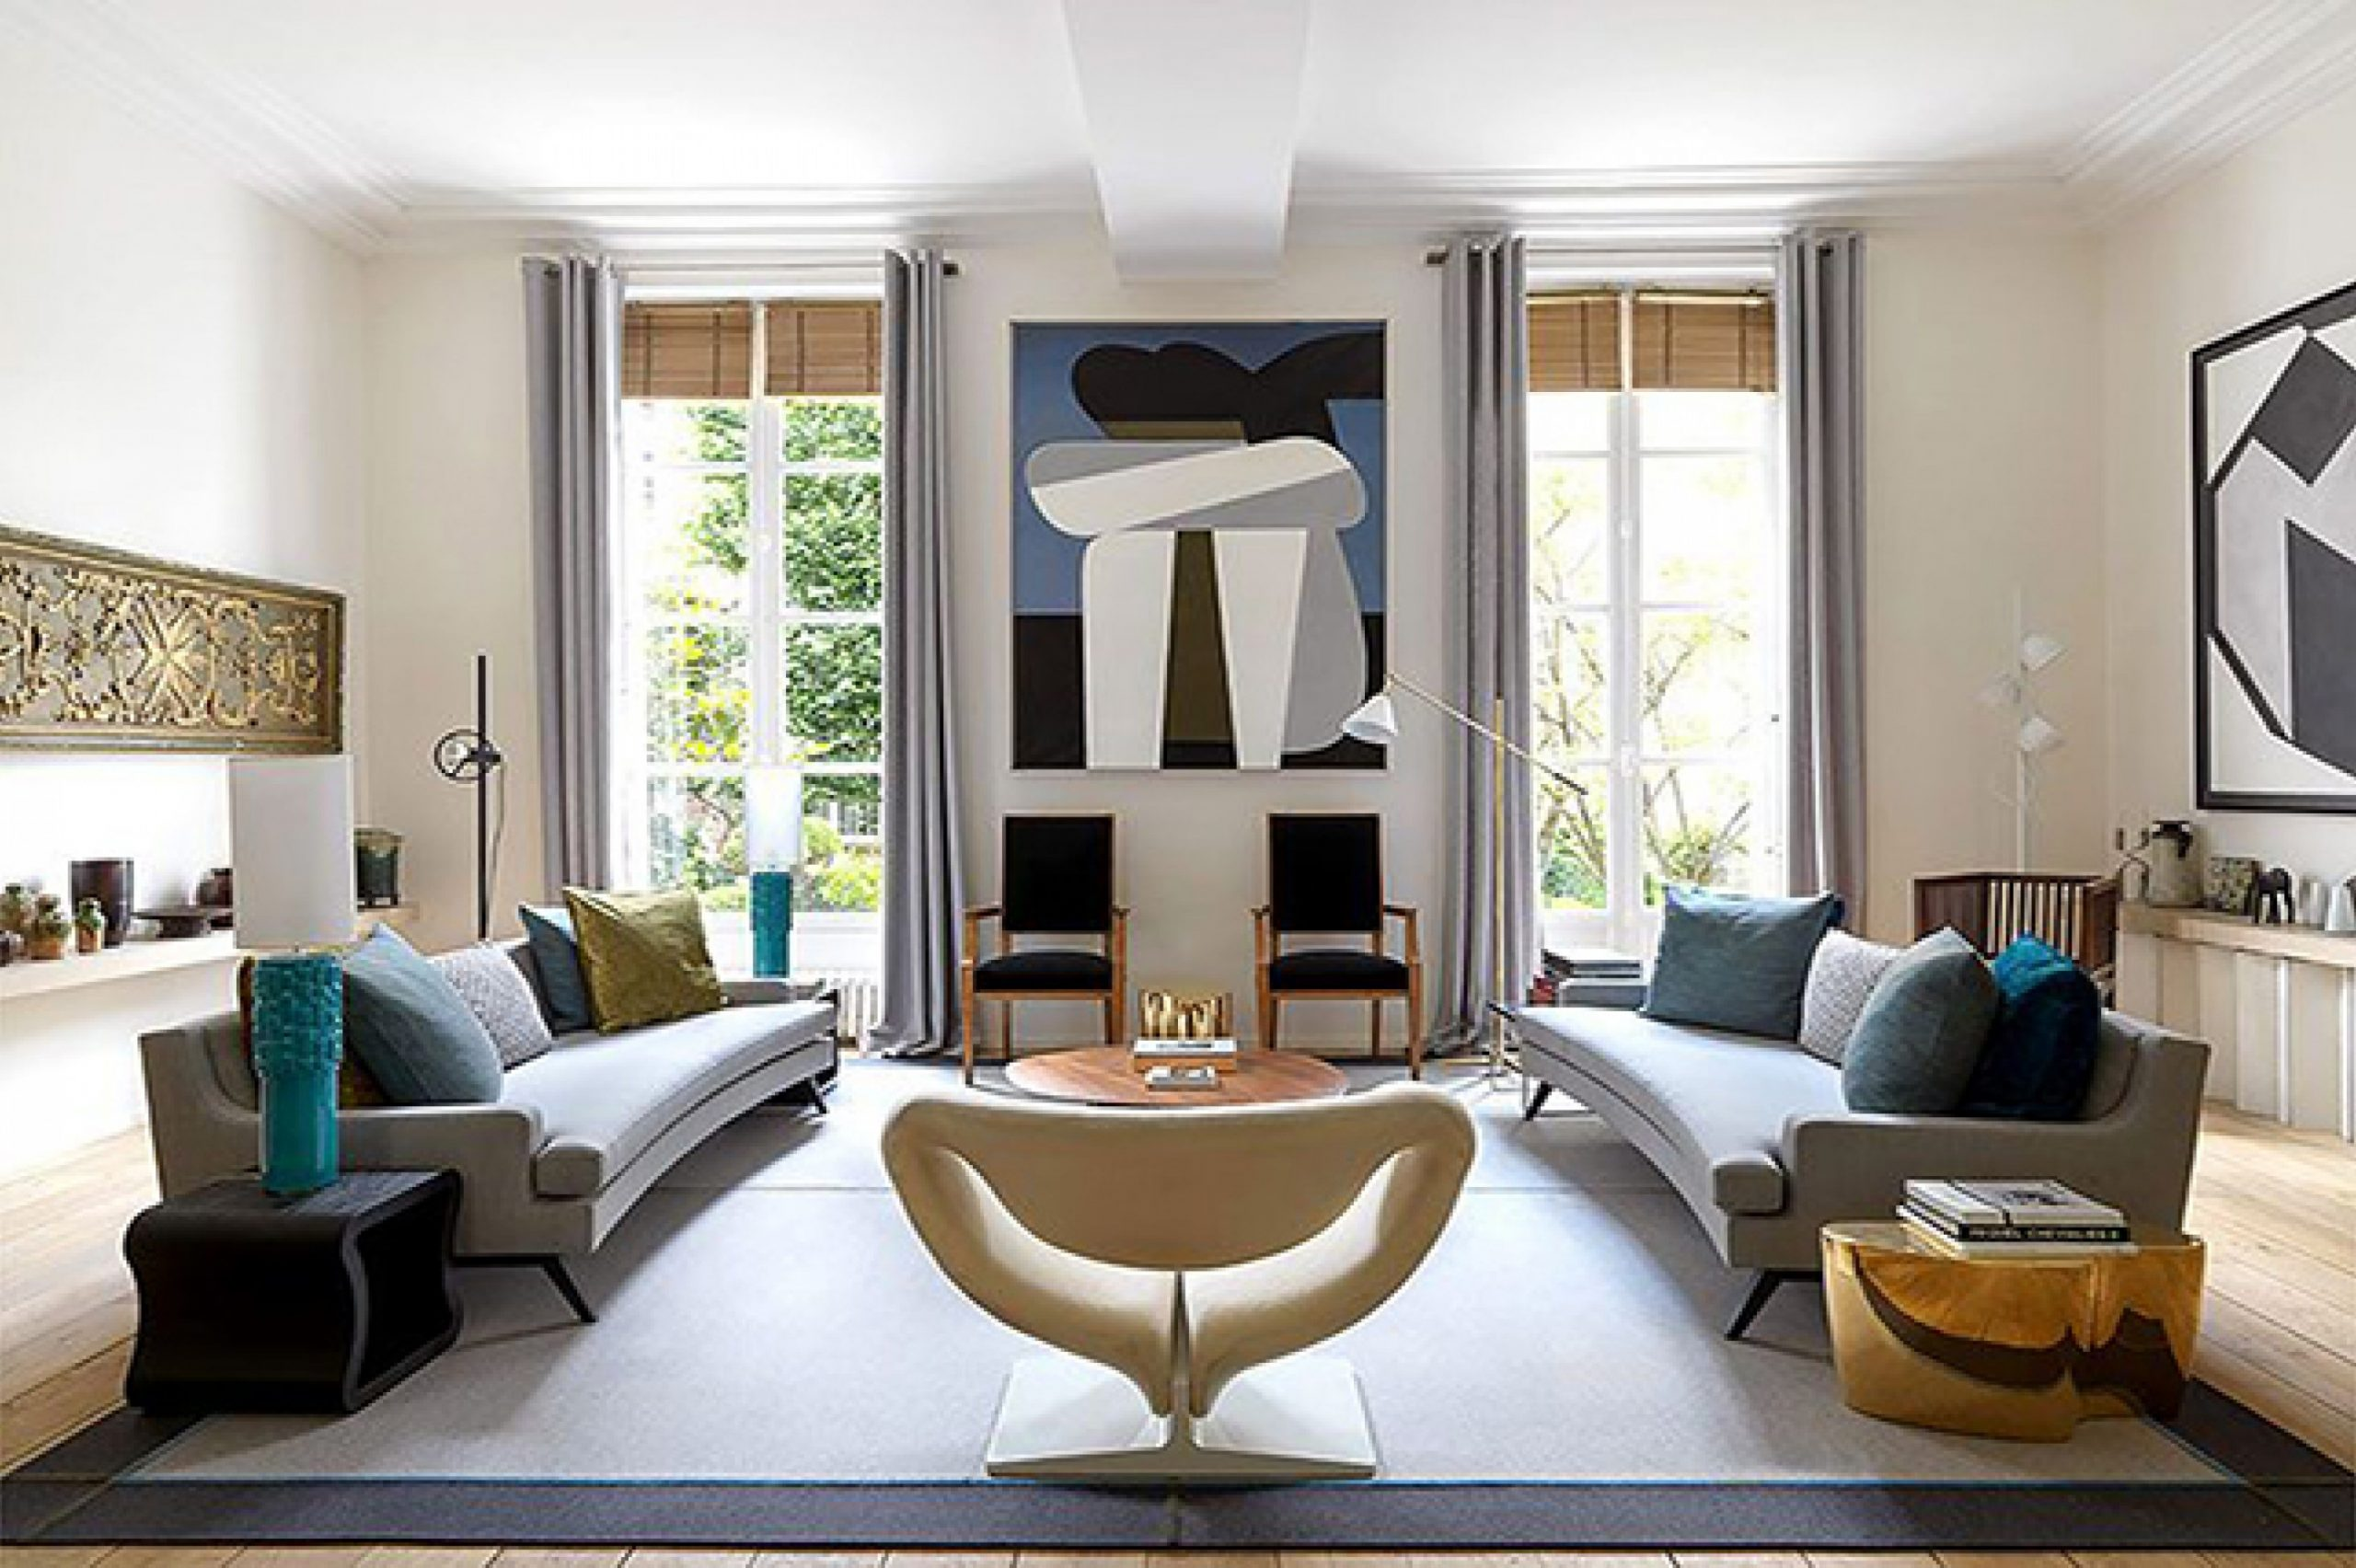 Inspiring Interior Design Projects To Discover In Paris (Part 1!) interior design project Inspiring Interior Design Projects To Discover In Paris (Part 1!) Harmonious Parisian Apartment by Didier Gomez 1 scaled